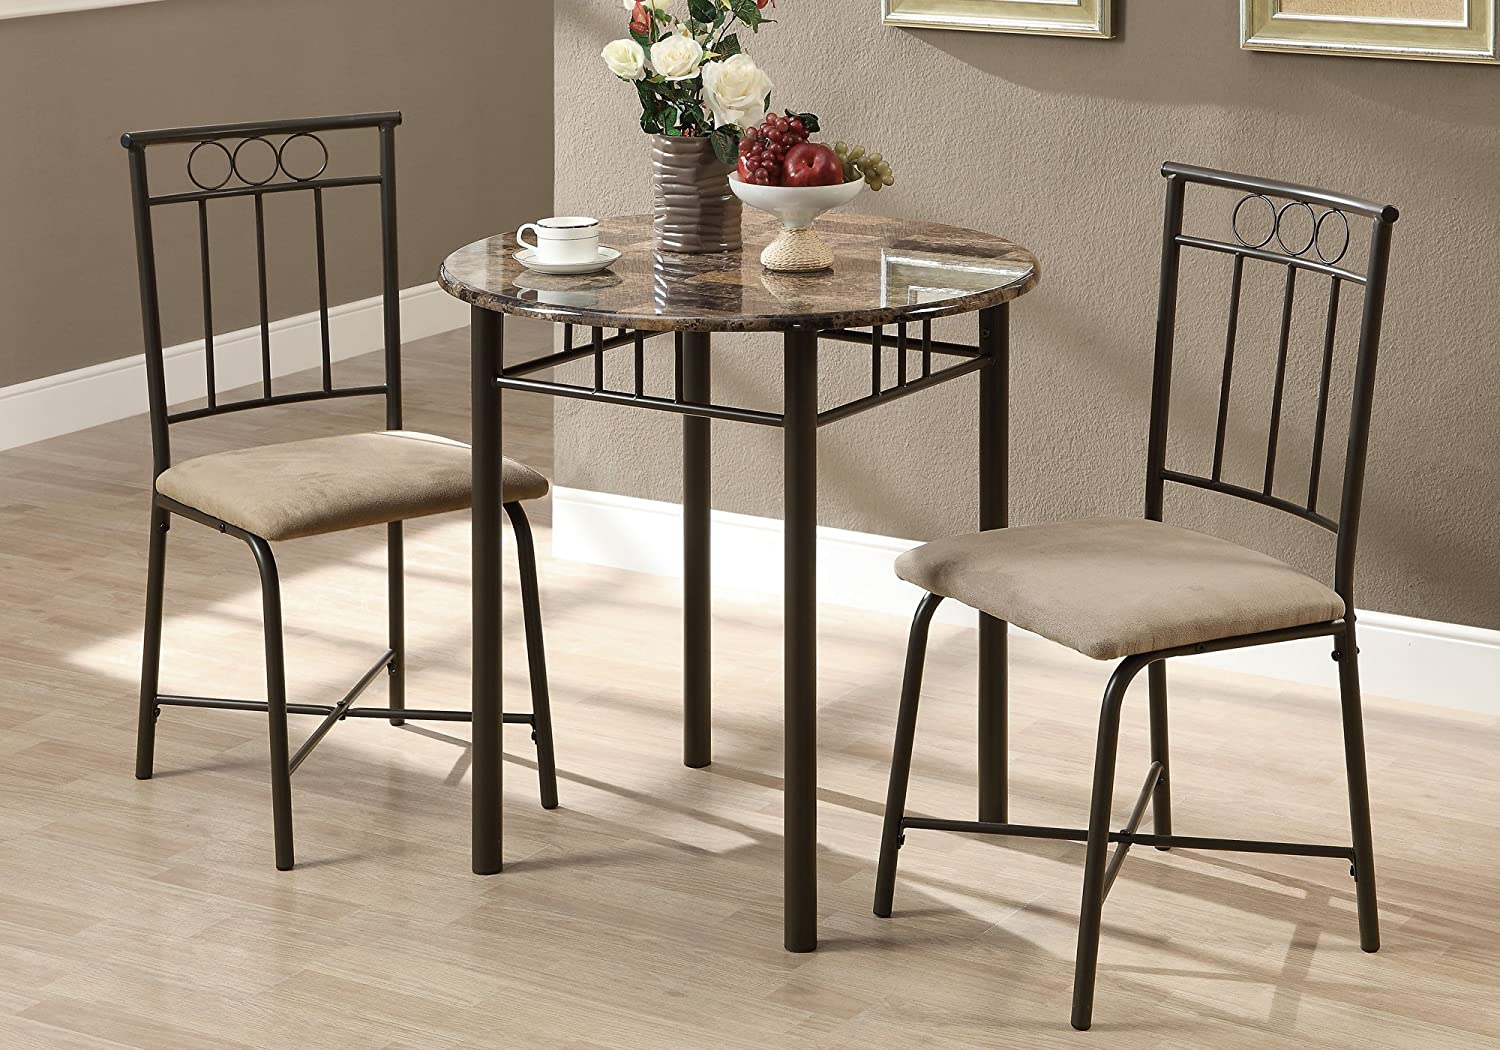 Monarch Specialties I 3045 Bronze Metal and Cappuccino Marble Bistro Dining Set, 3-Piece